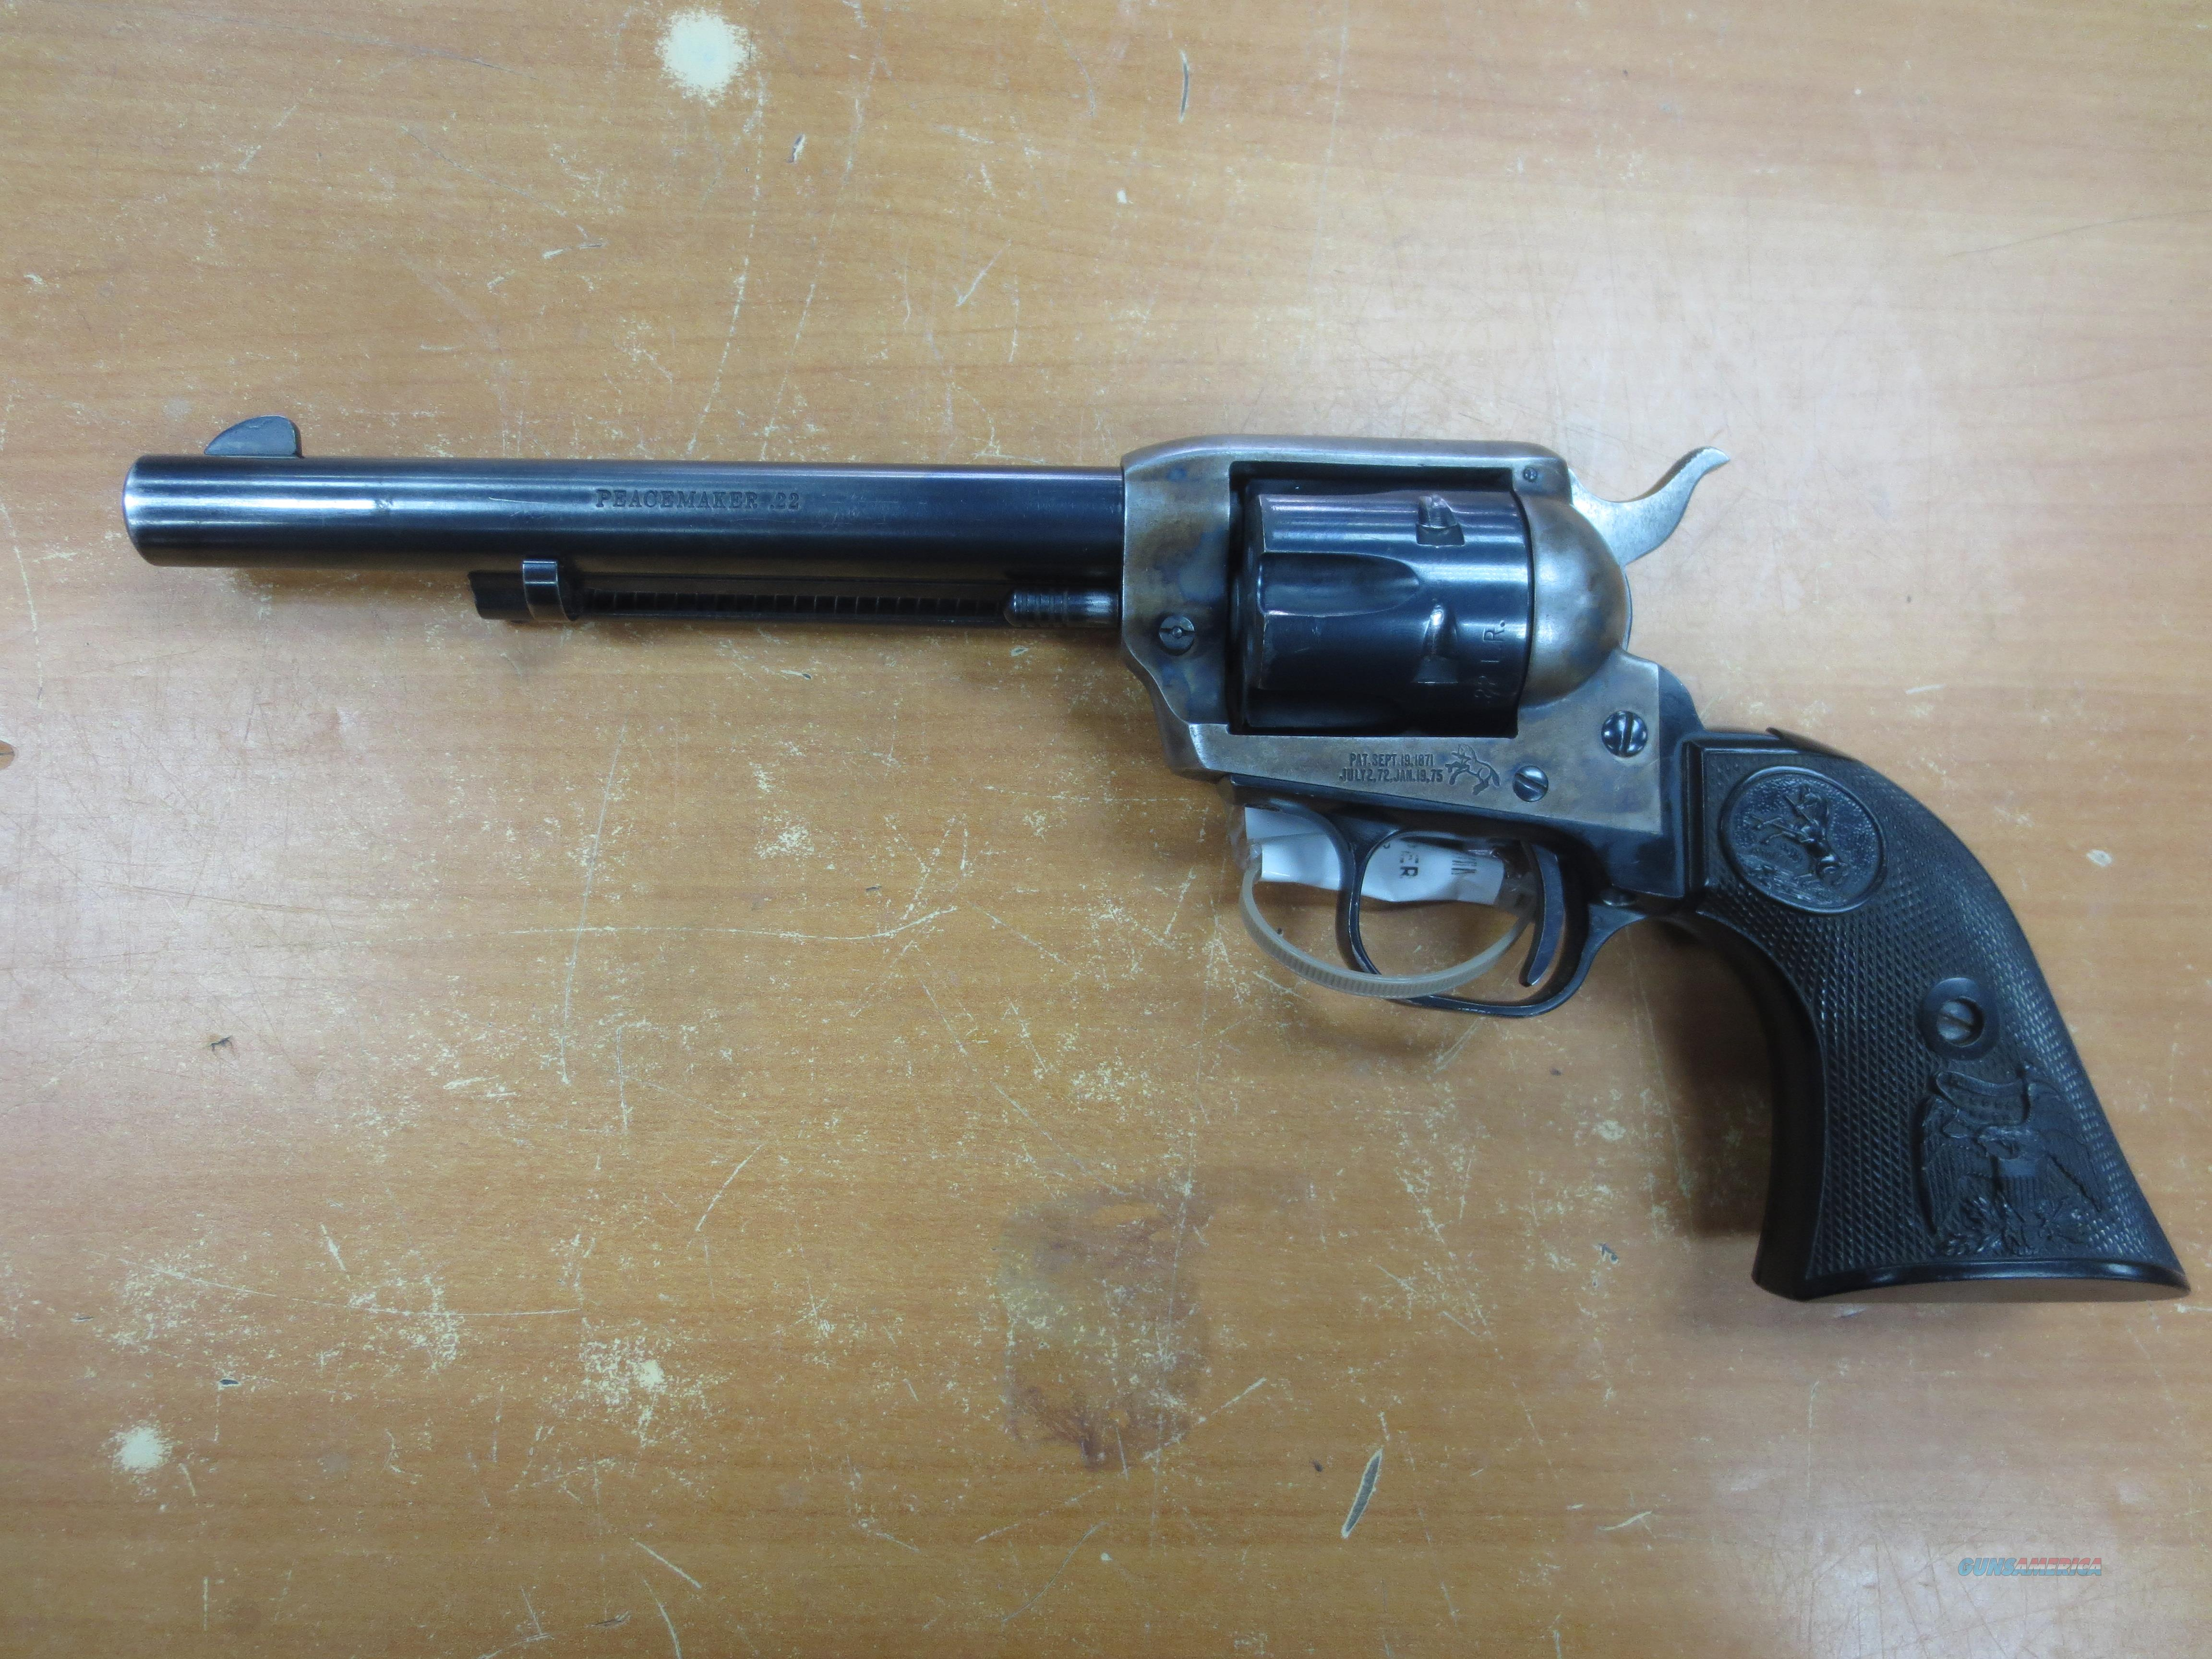 Colt Peacemaker .22LR   Guns > Pistols > Colt Single Action Revolvers - Modern (22 Cal.)